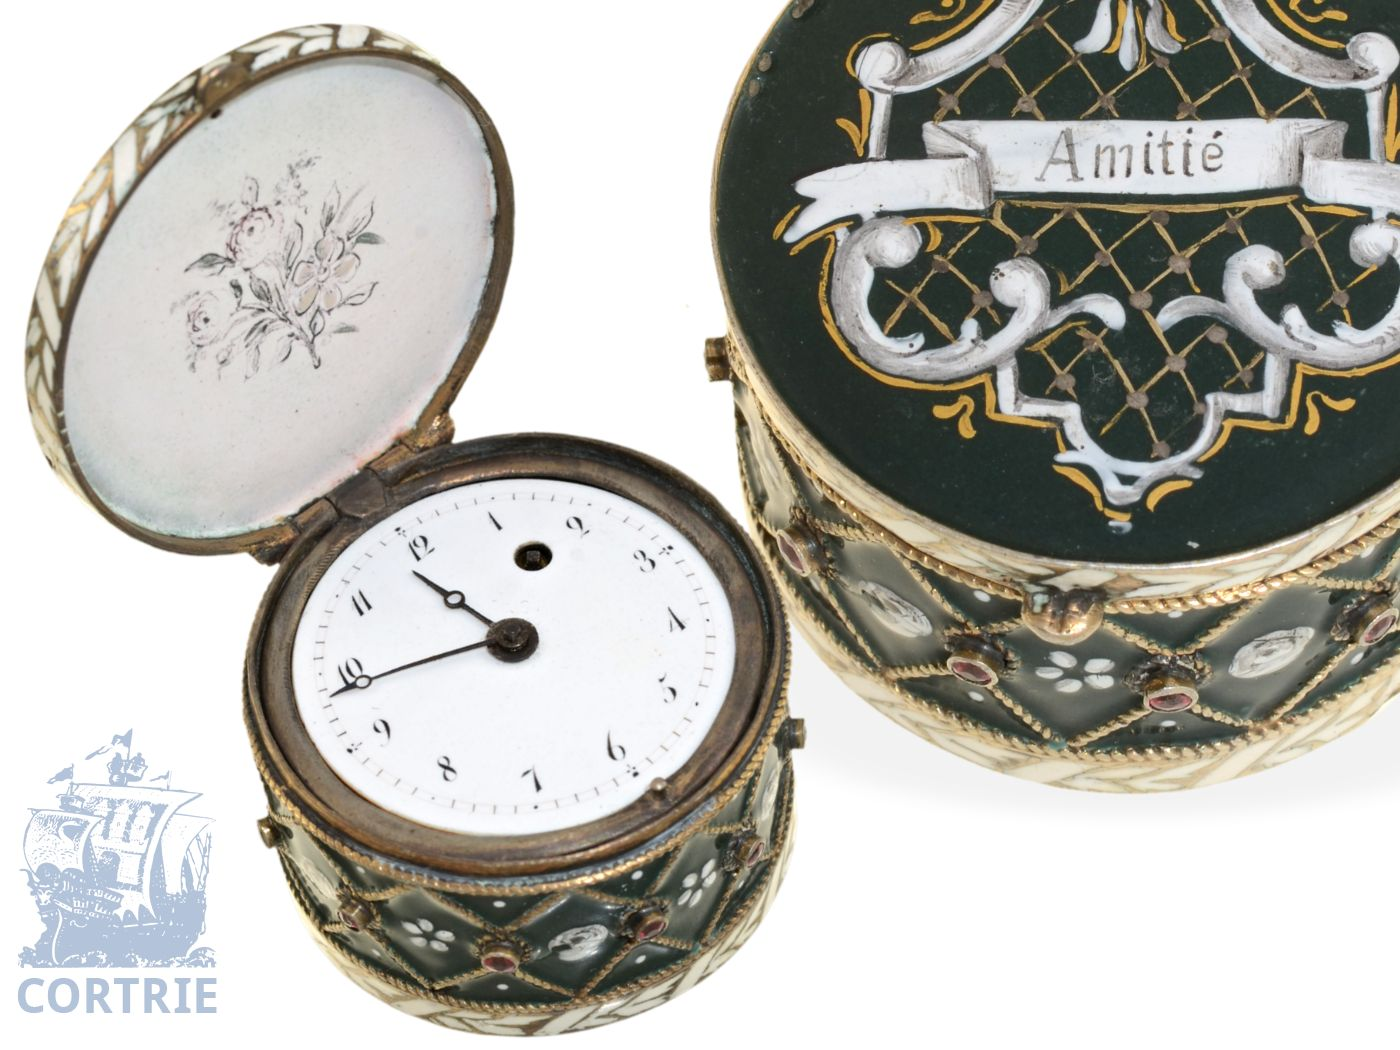 Pendant watch/form watch: extravagant and rare French enamel form watch Tambour ca. 1790-